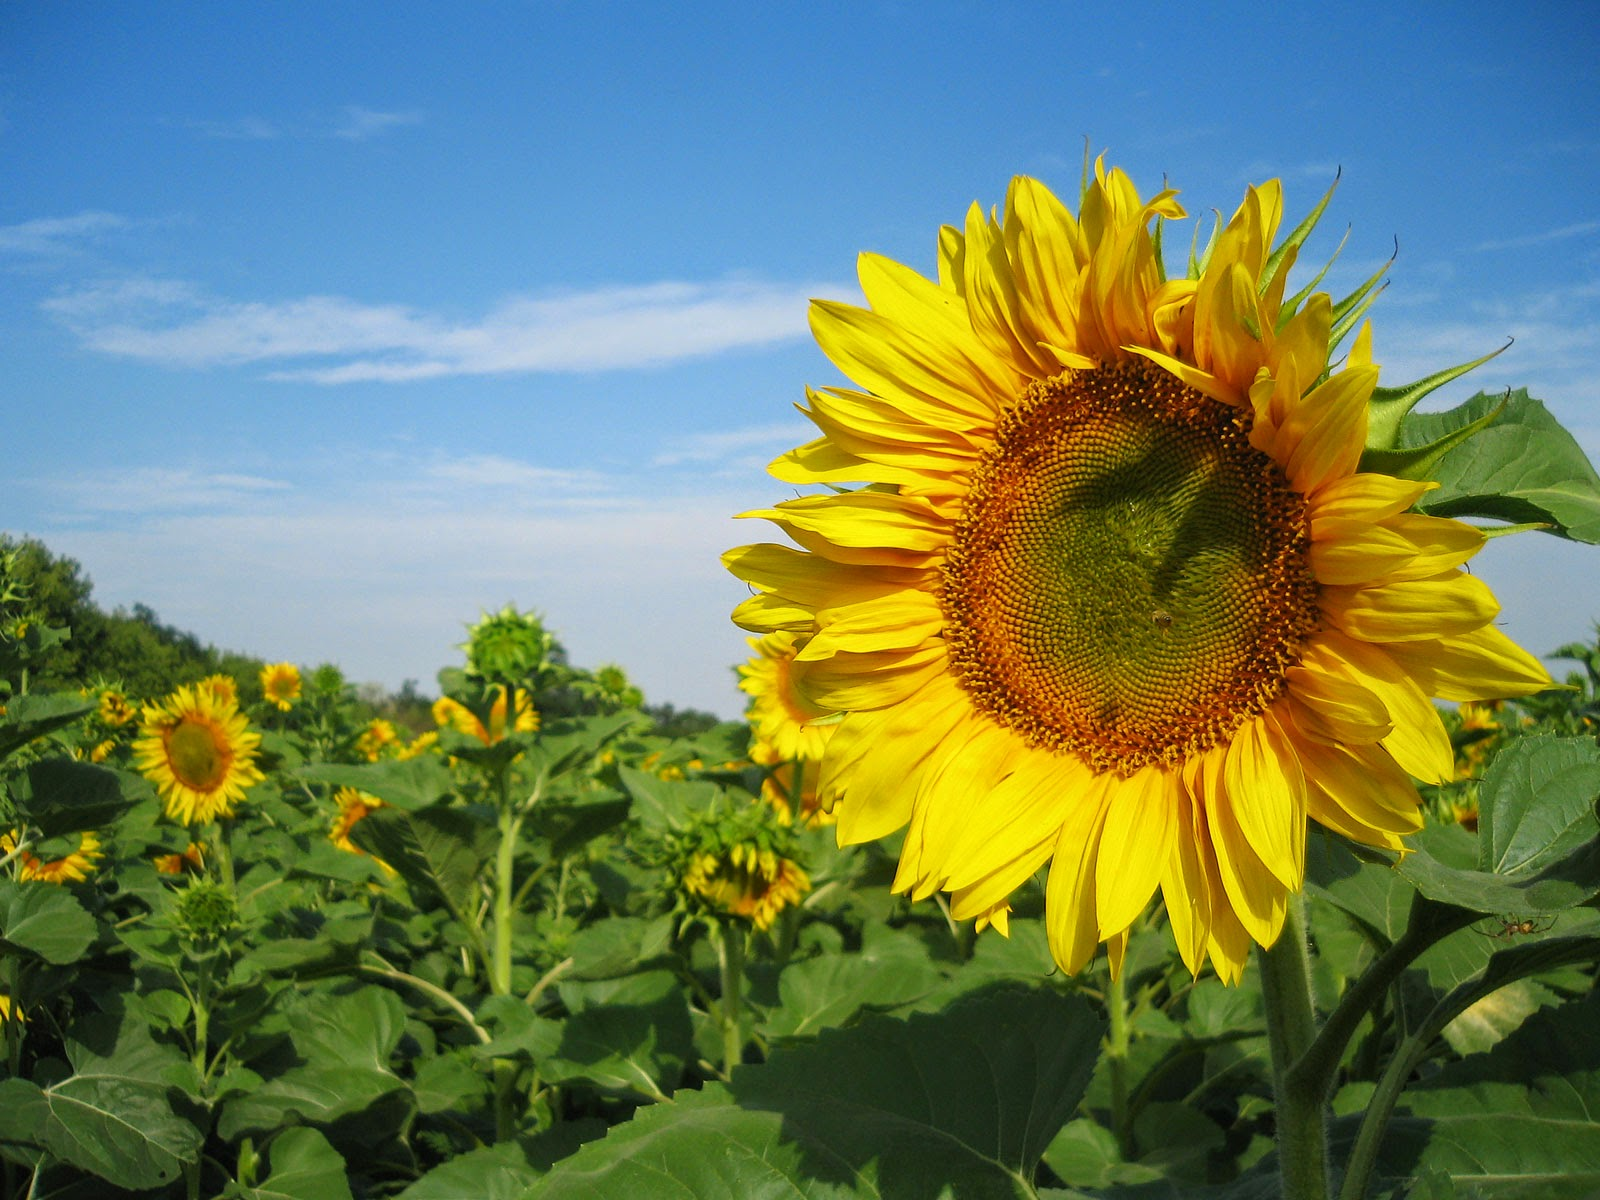 Sunflowers Nature Wallpaper